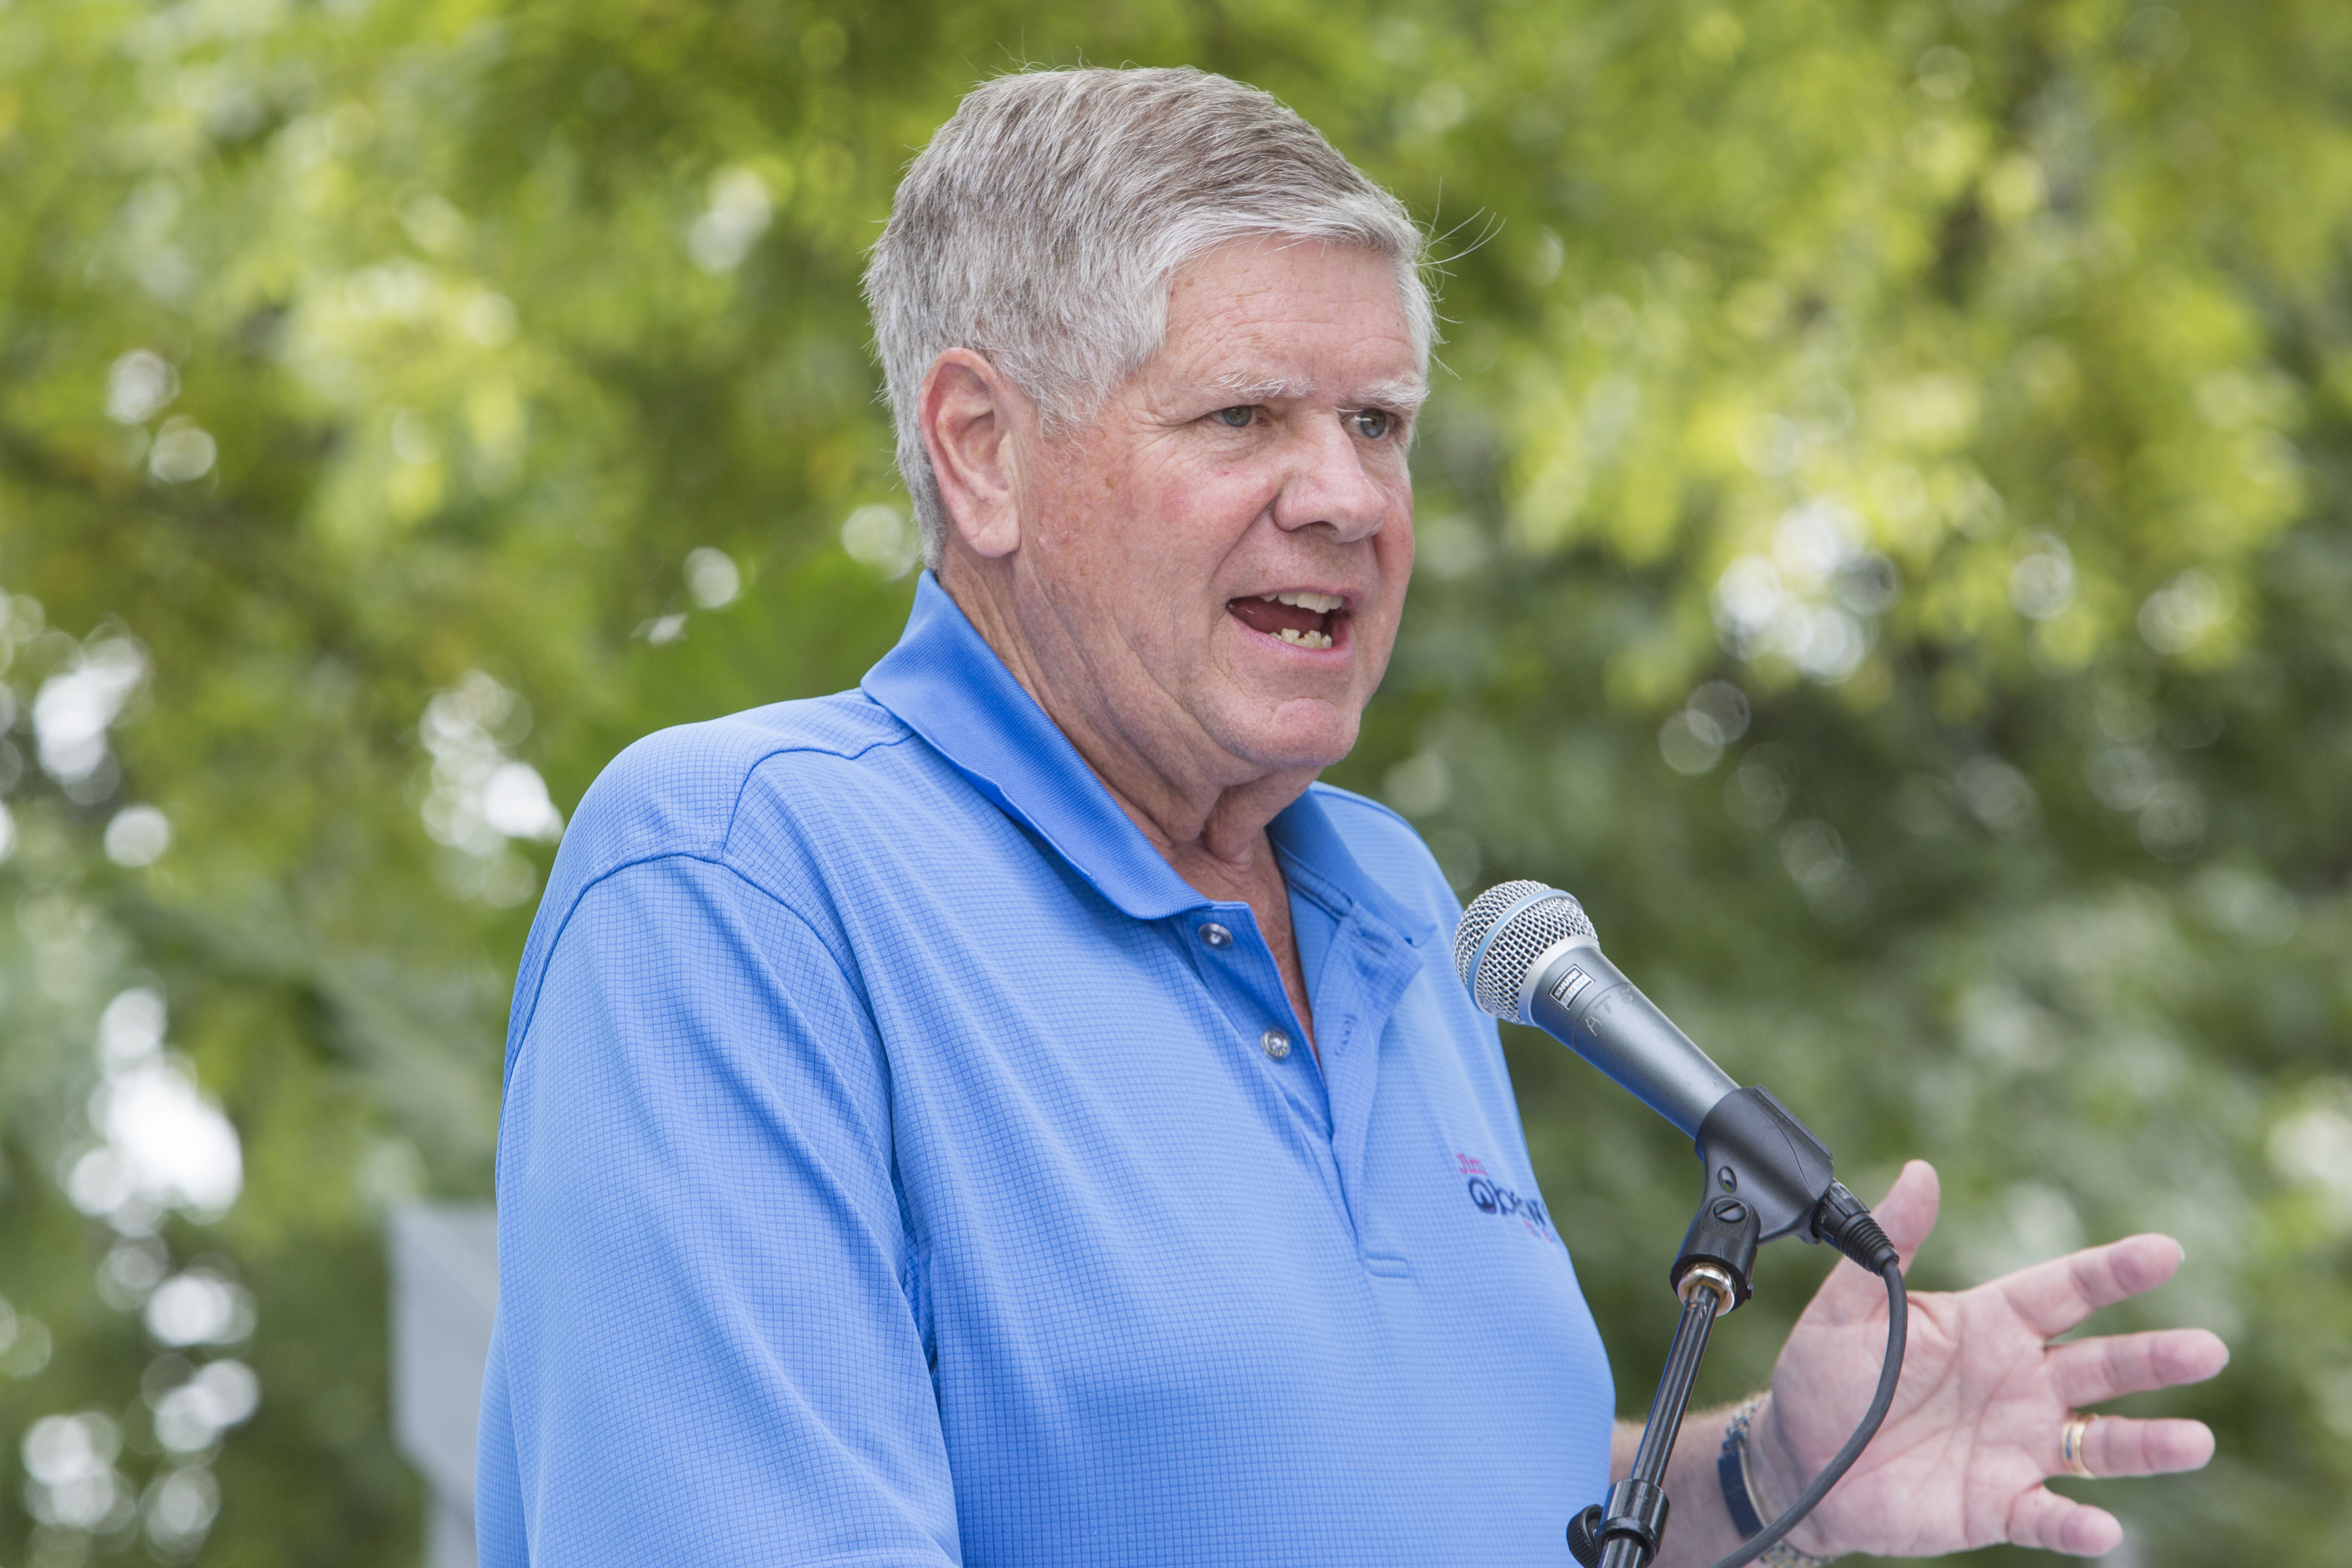 Republican House candidate Jim Oberweis, a state senator who loaned his campaign $1 million in August 2014